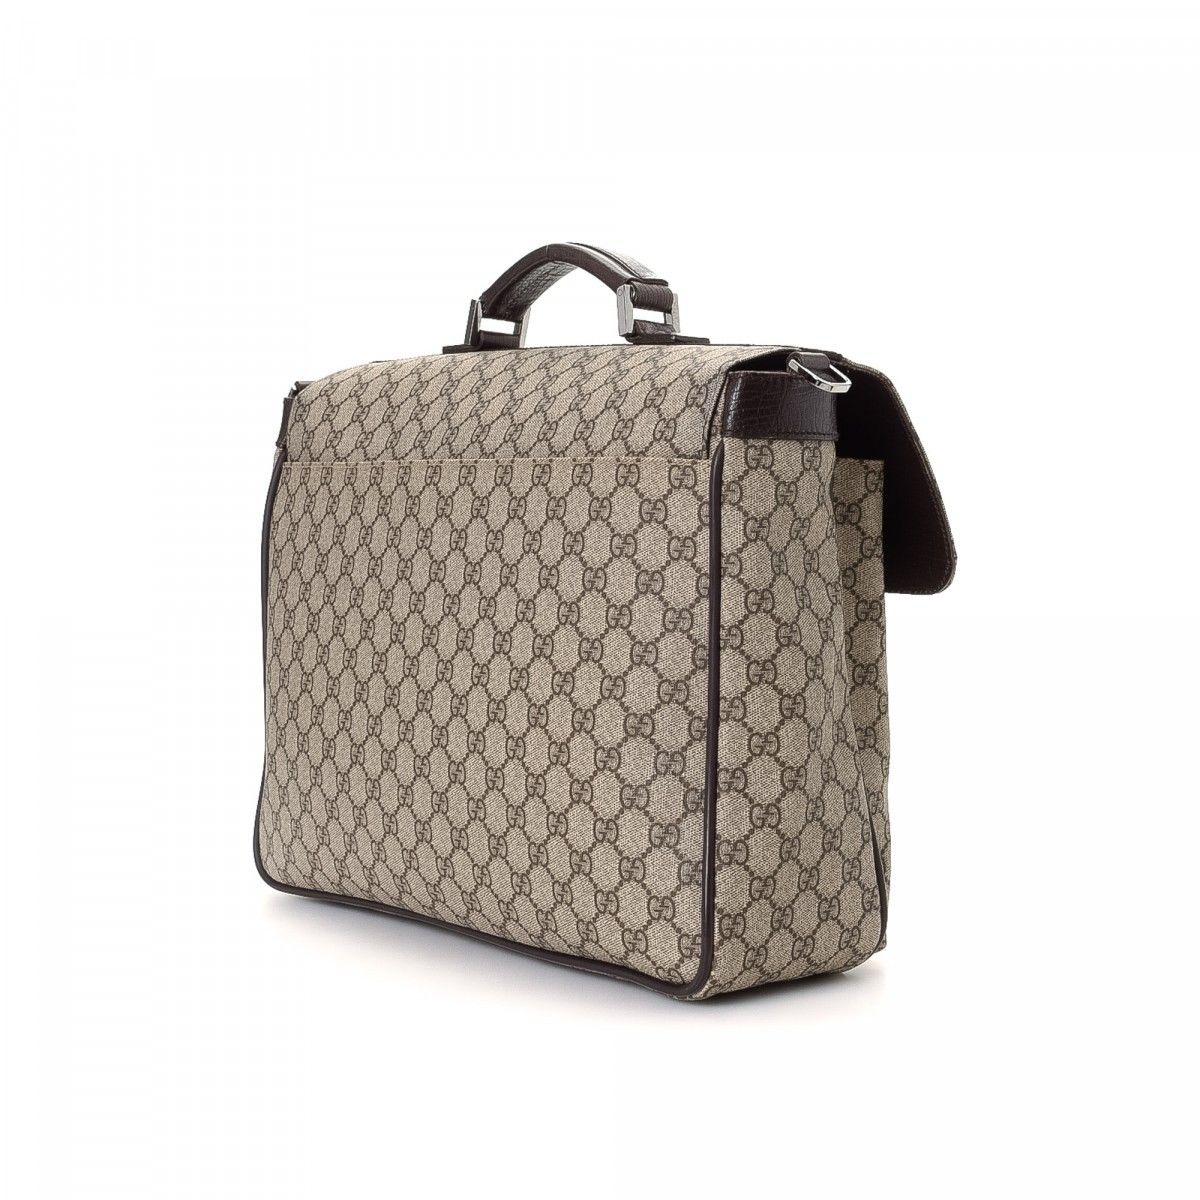 319e5c5a644c Gucci GG Supreme Business Bag. The authenticity of this vintage Gucci  Business Bag briefcase is guaranteed by LXRandCo.